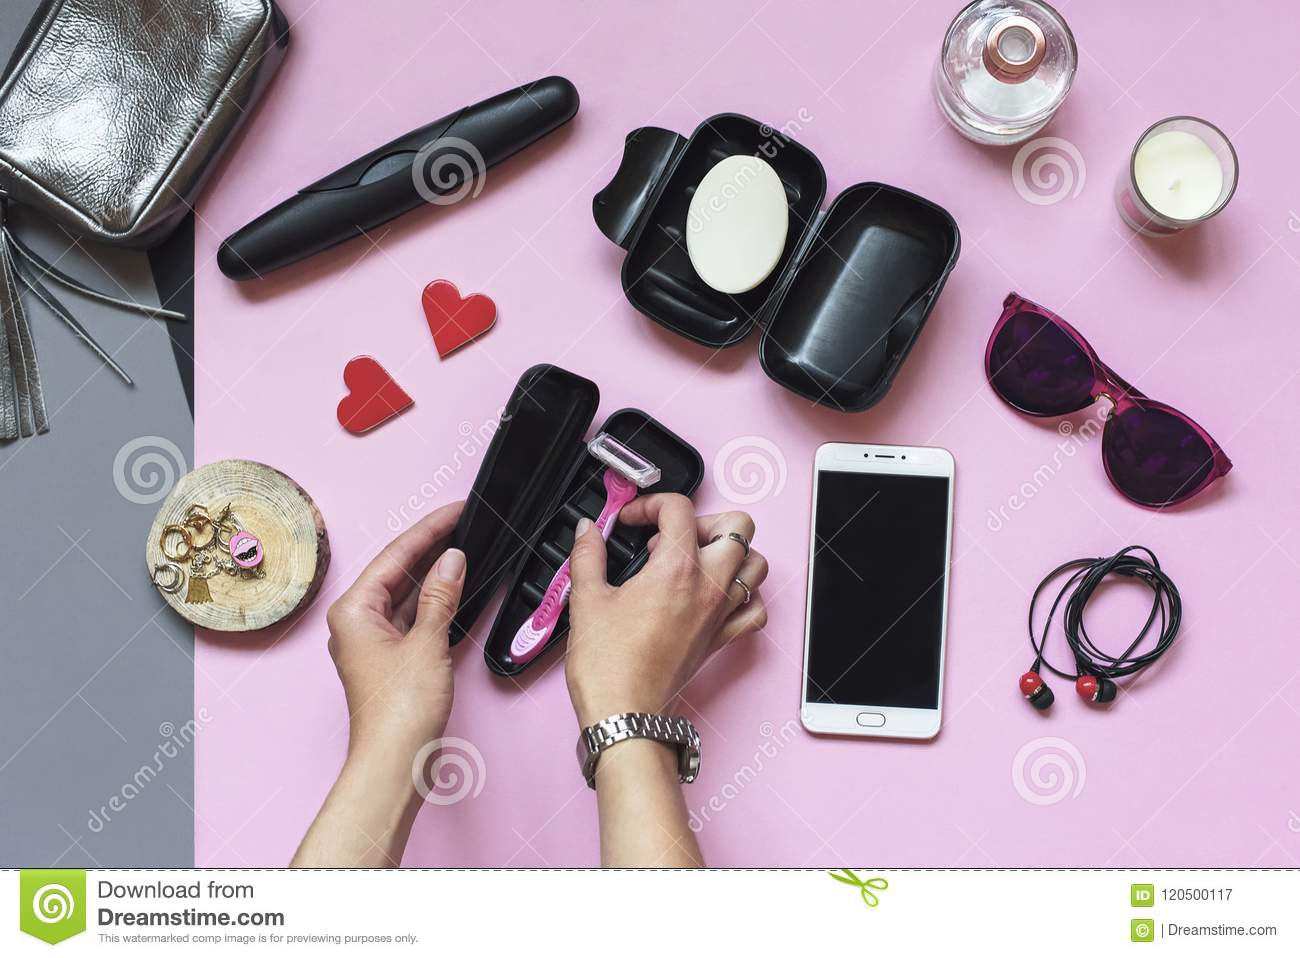 Women S Travel Accessories Summer Hygiene Items On A Pastel Pink Background Vacation And Travel Items Flat Lay Top View Stock Image Image Of Black Brush 120500117